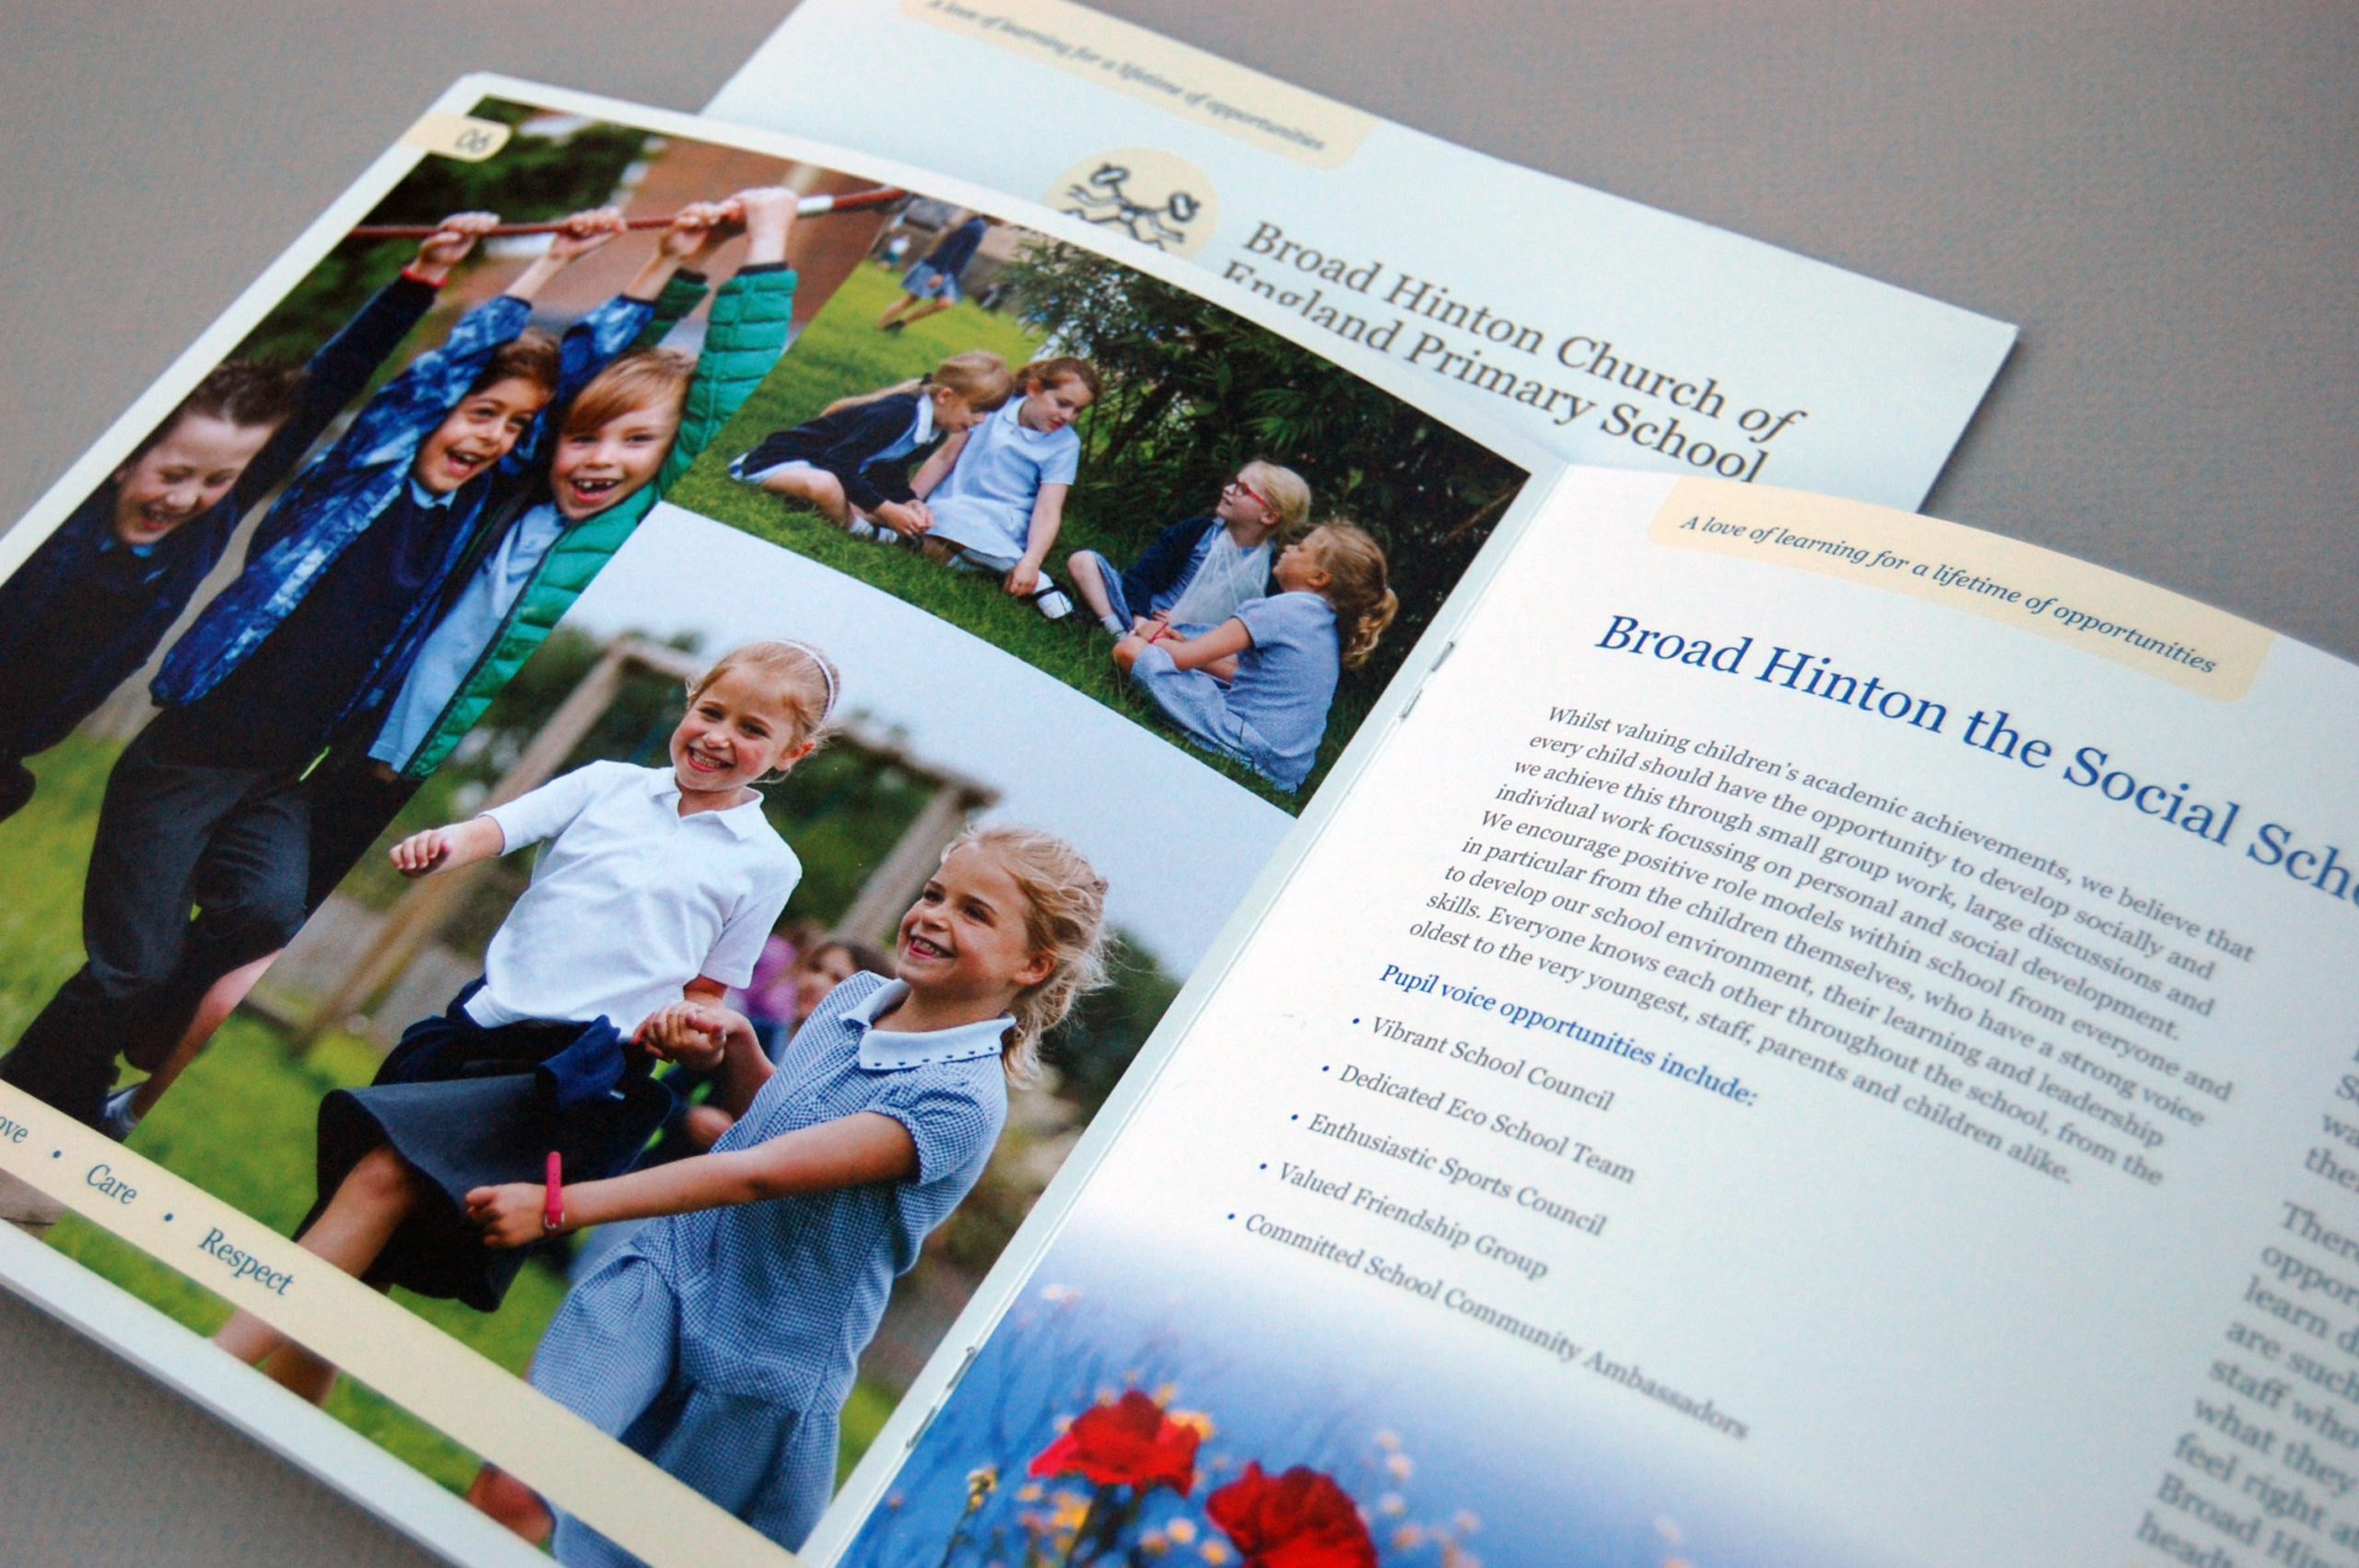 Broad Hinton School prospectus spread